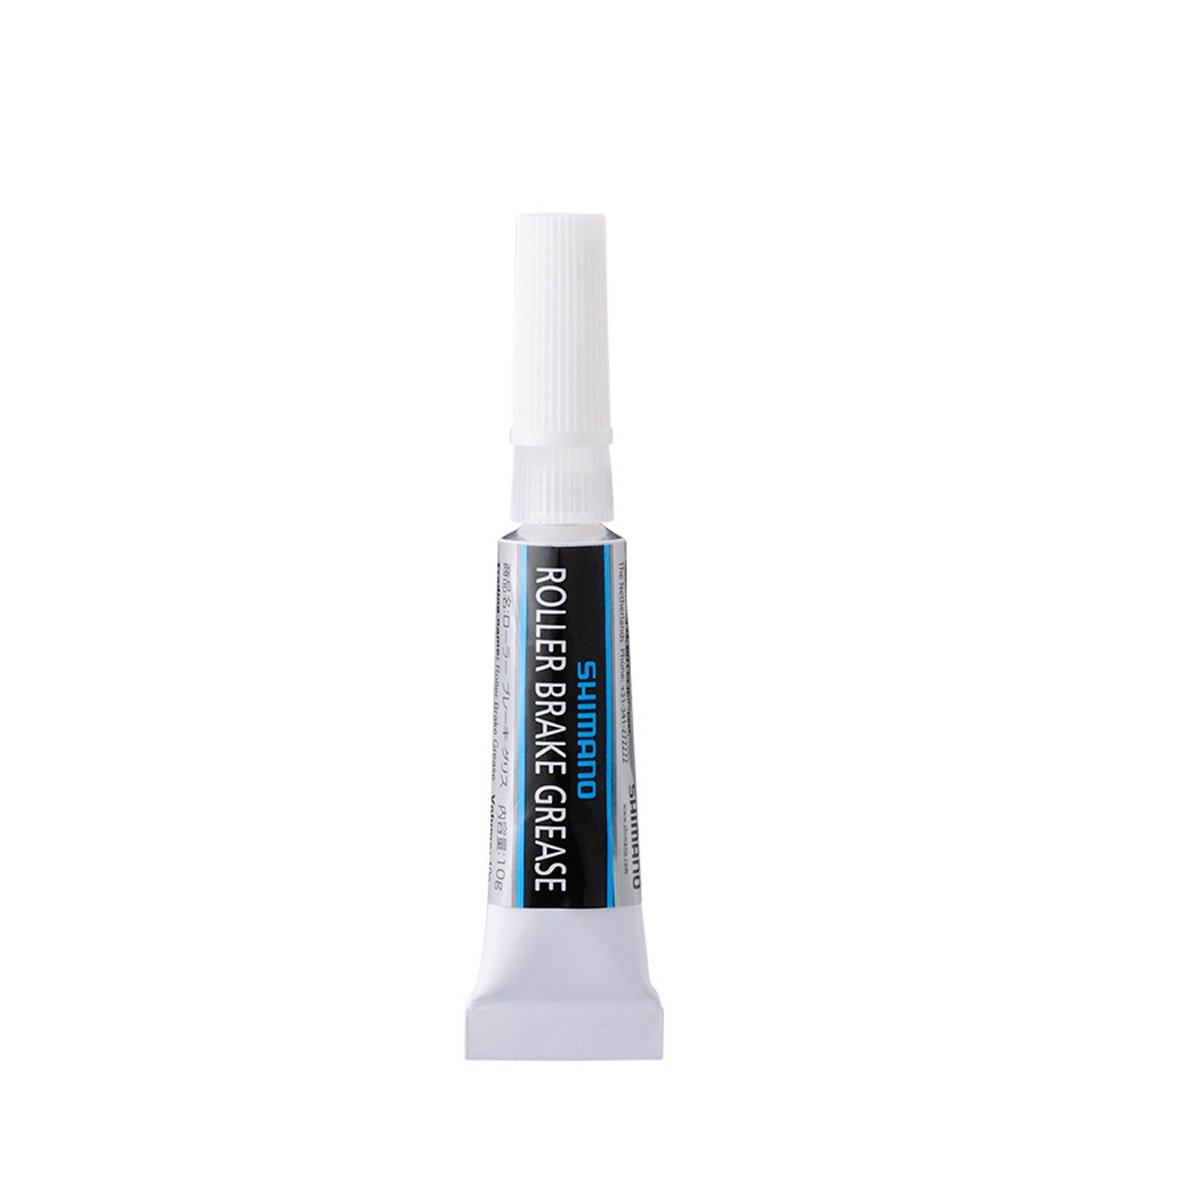 Shimano Roller Bicycle Brake Grease - 10g - Y04140020